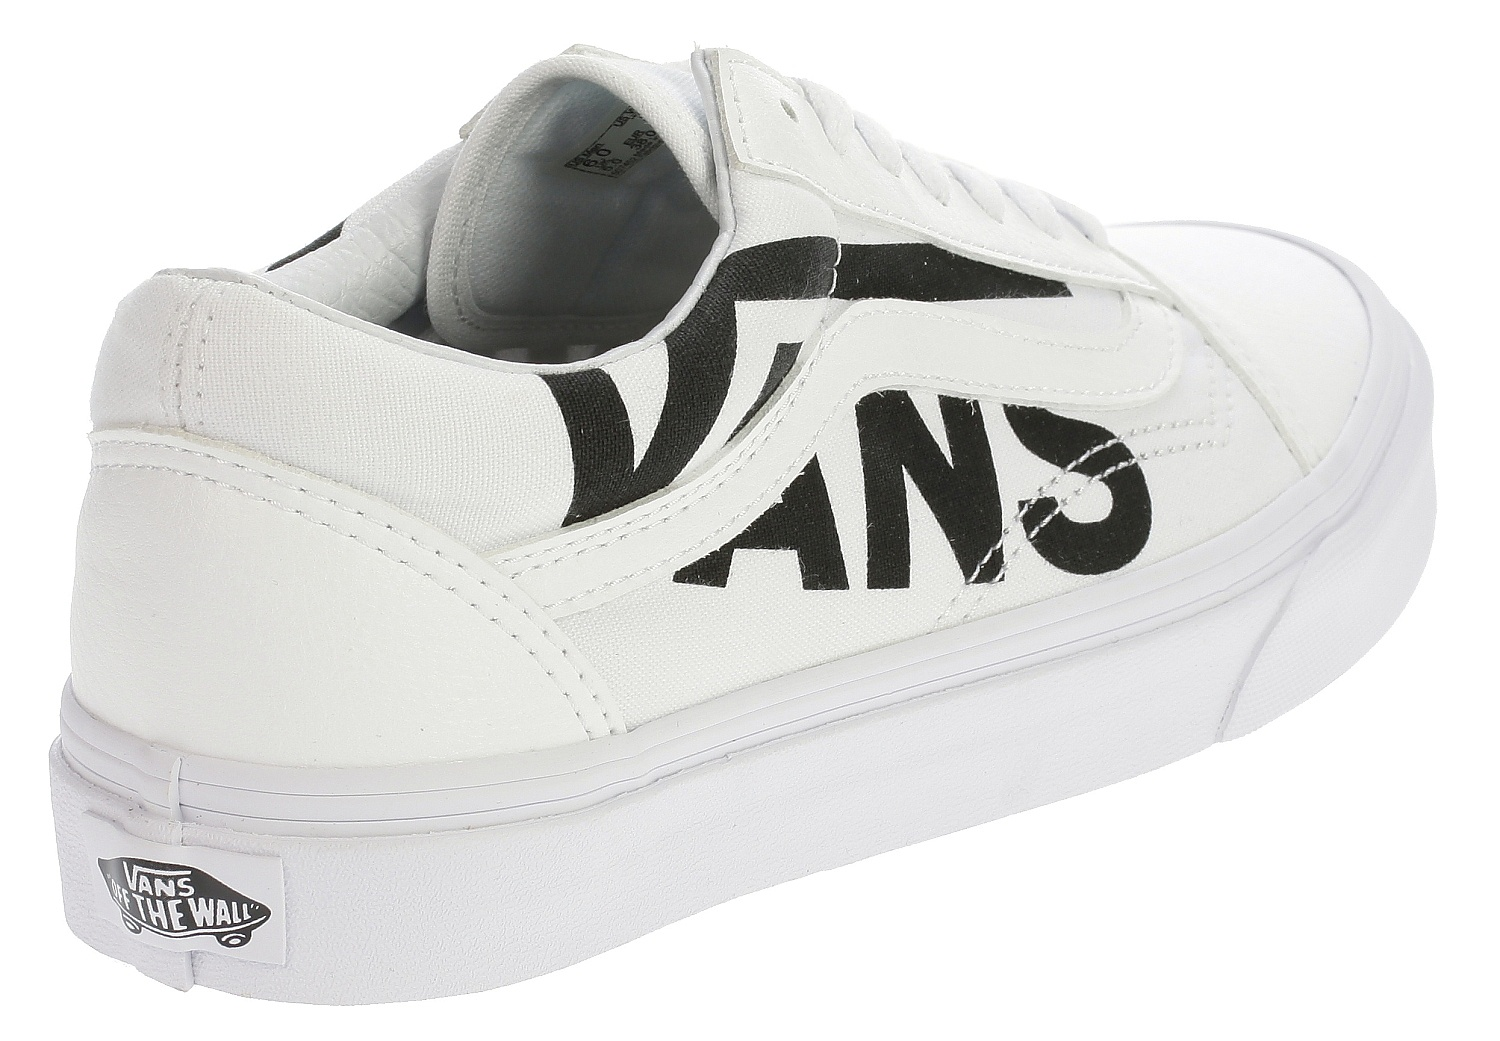 shoes Vans Old Skool - Vans/True White/Black - Snowboard ...